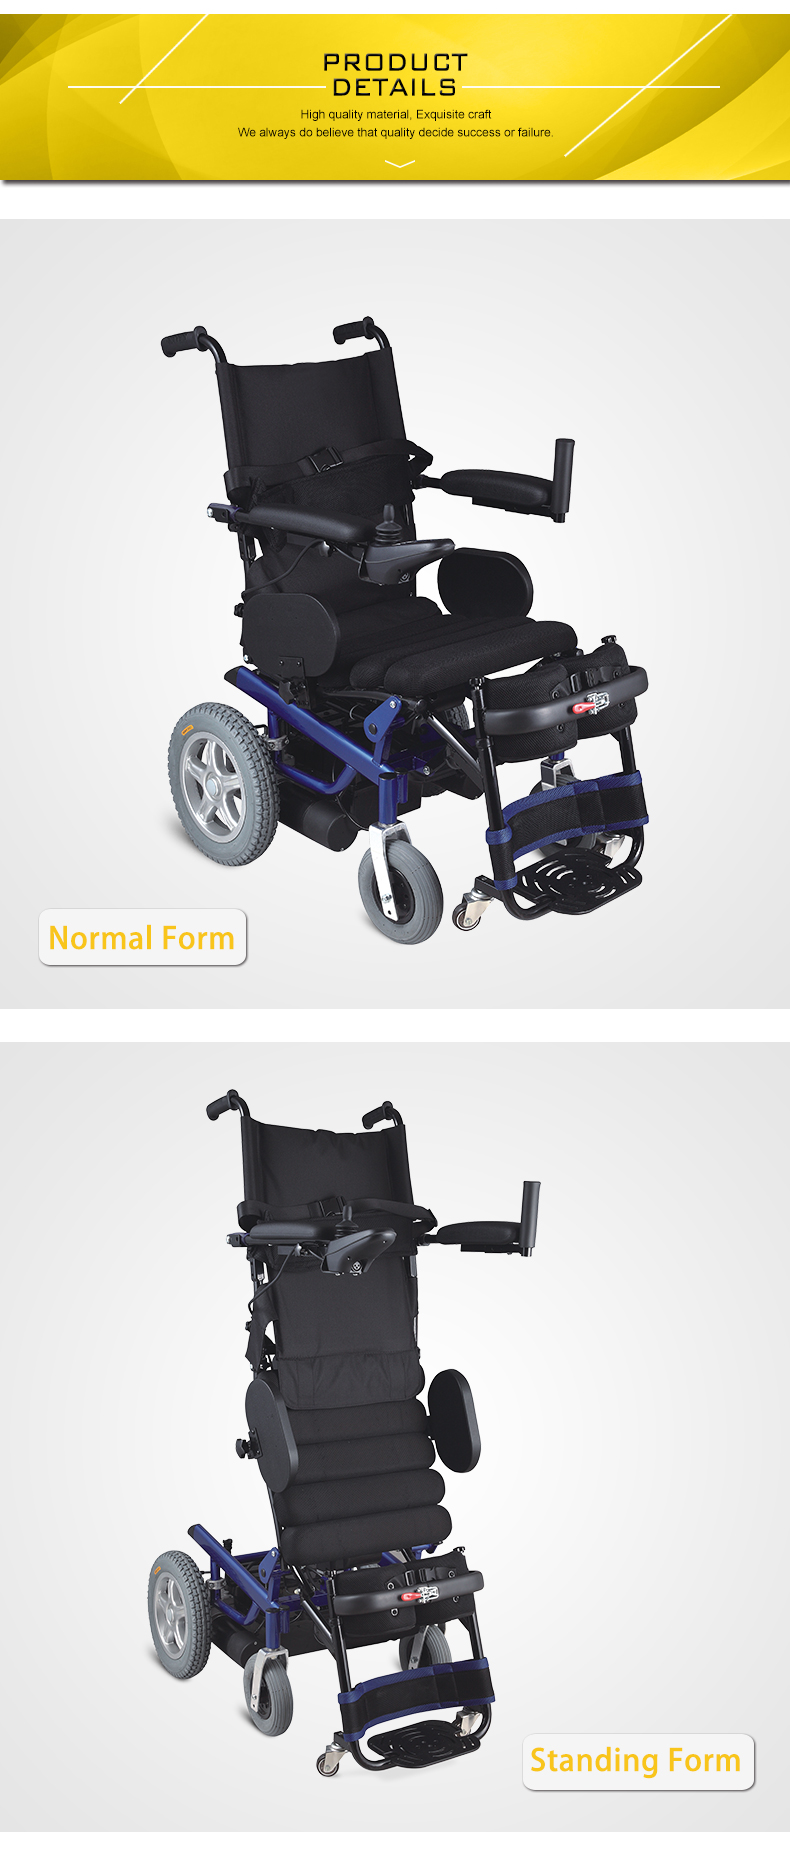 Stand up lightweight foldable electric wheelchair for elderly and disabled.